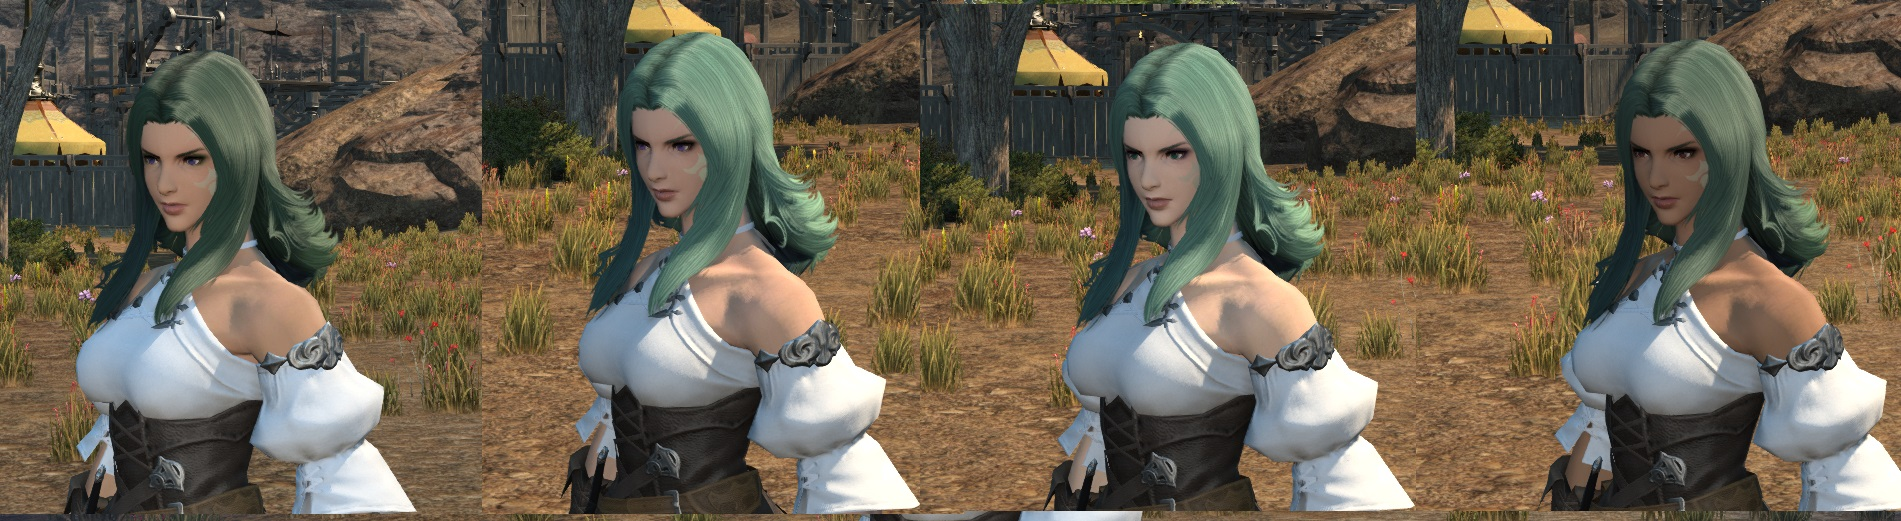 manako ffxiv this hair ffxi character like color what green more help pinkish look akin cause laughing stop cannot eyesmouth expression website official best here found also actually match recreating grown accustomed quite personally pictures your benchmark going heres style just char post slightly darker edit2 pinkredish